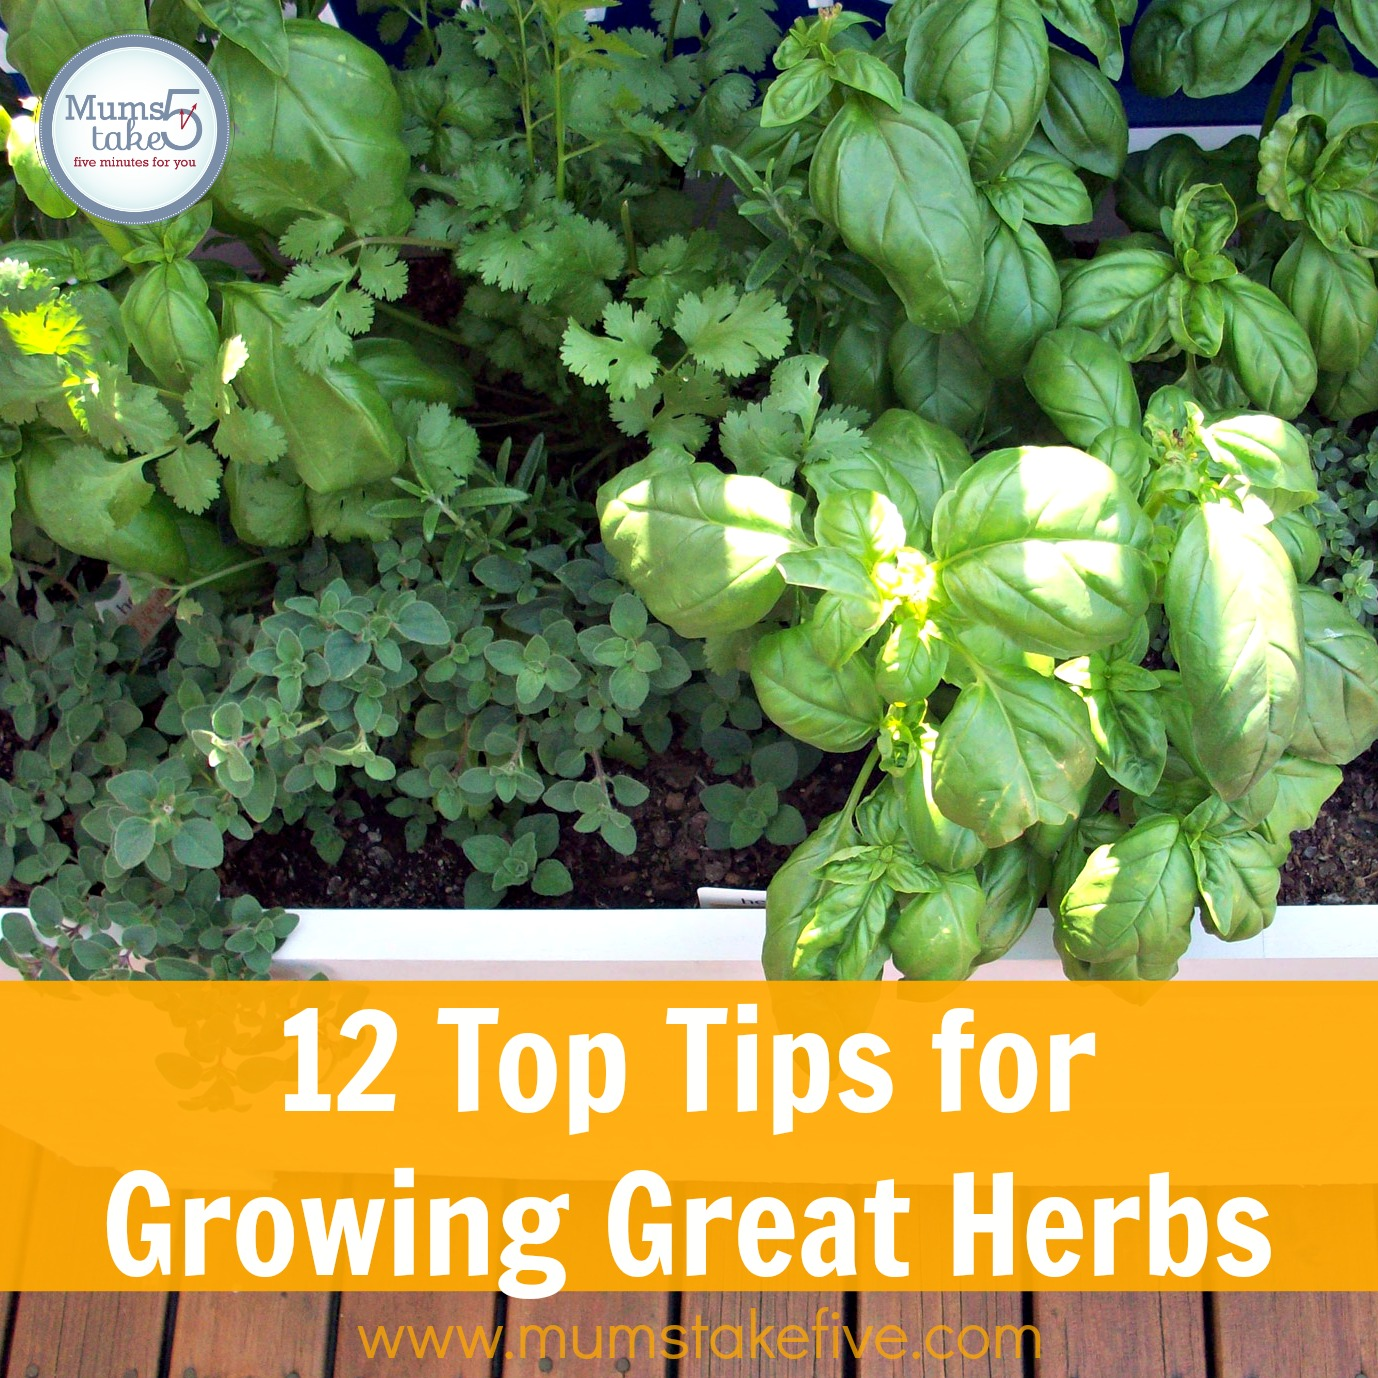 Top Tips for Growing your own herbs